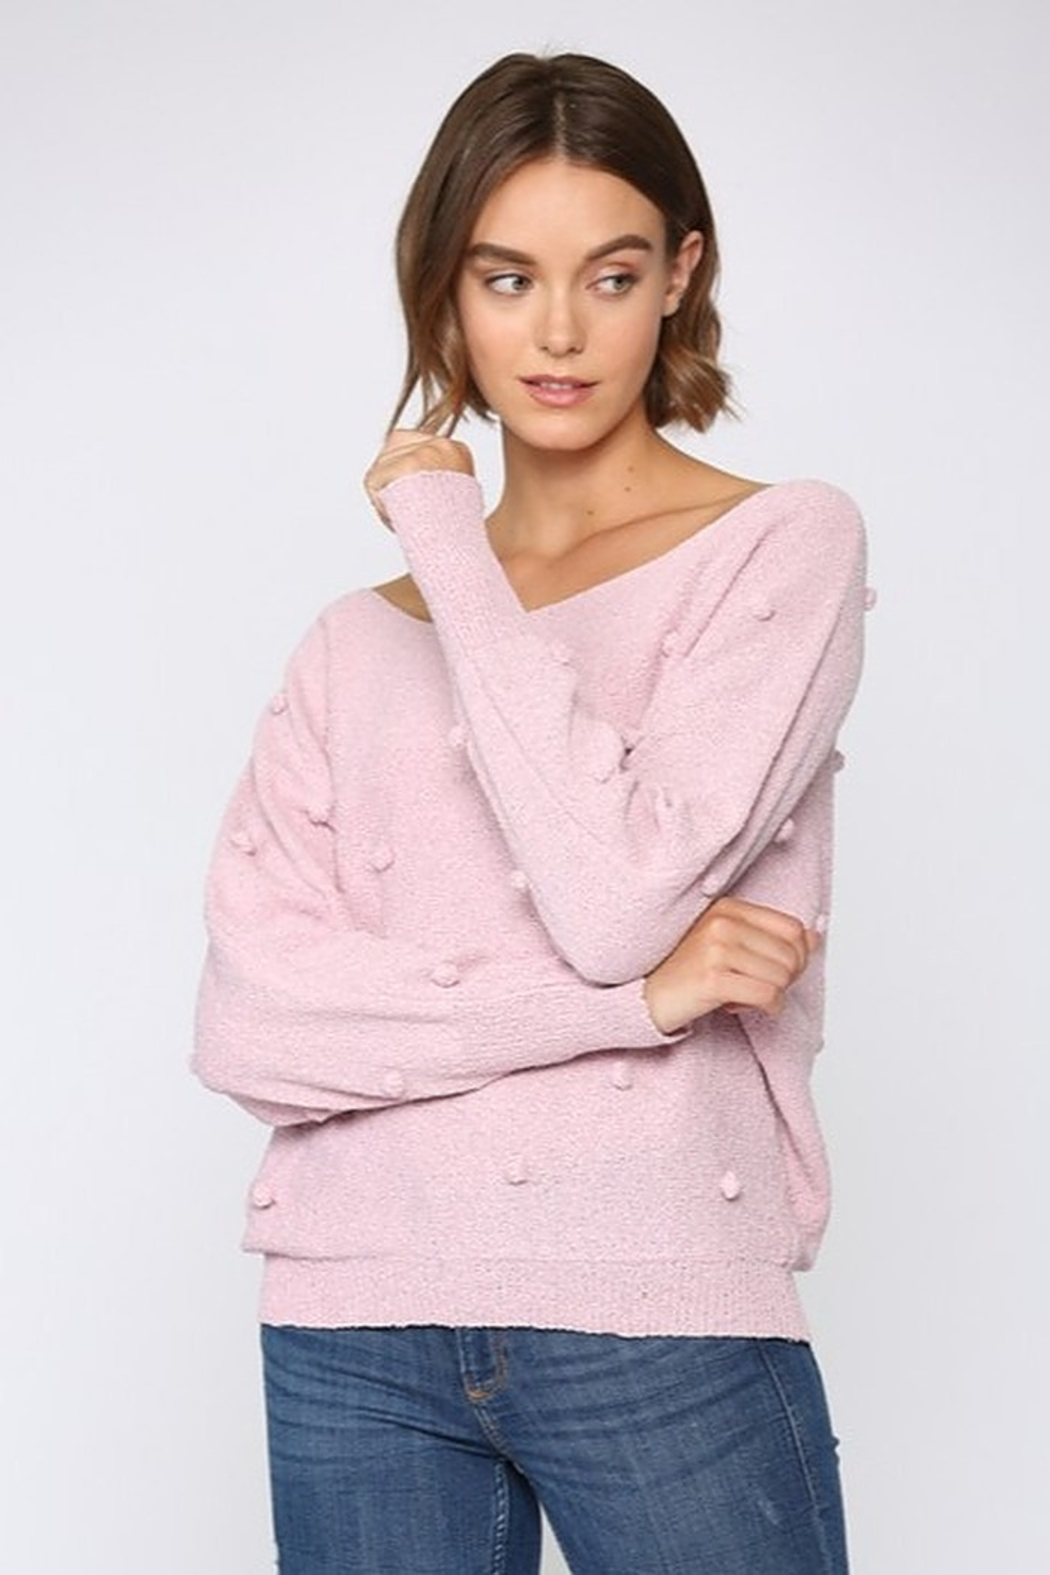 FATE by LFD Lightweight Pom Sweater - Main Image